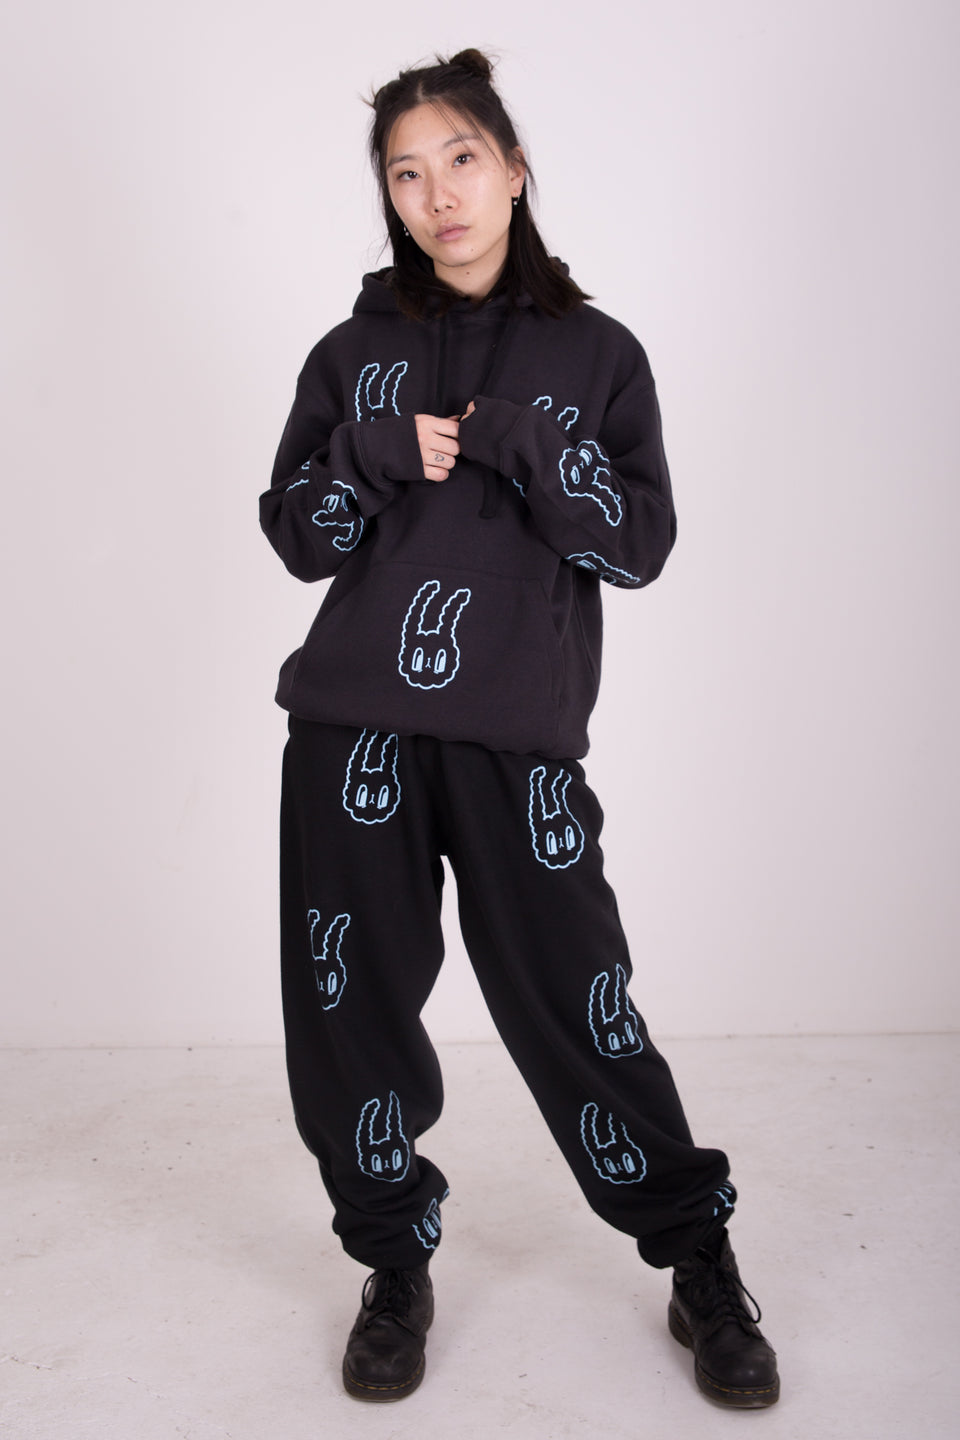 BUNNY BOY FULL TRACKSUIT - BLACK & BABY BLUE